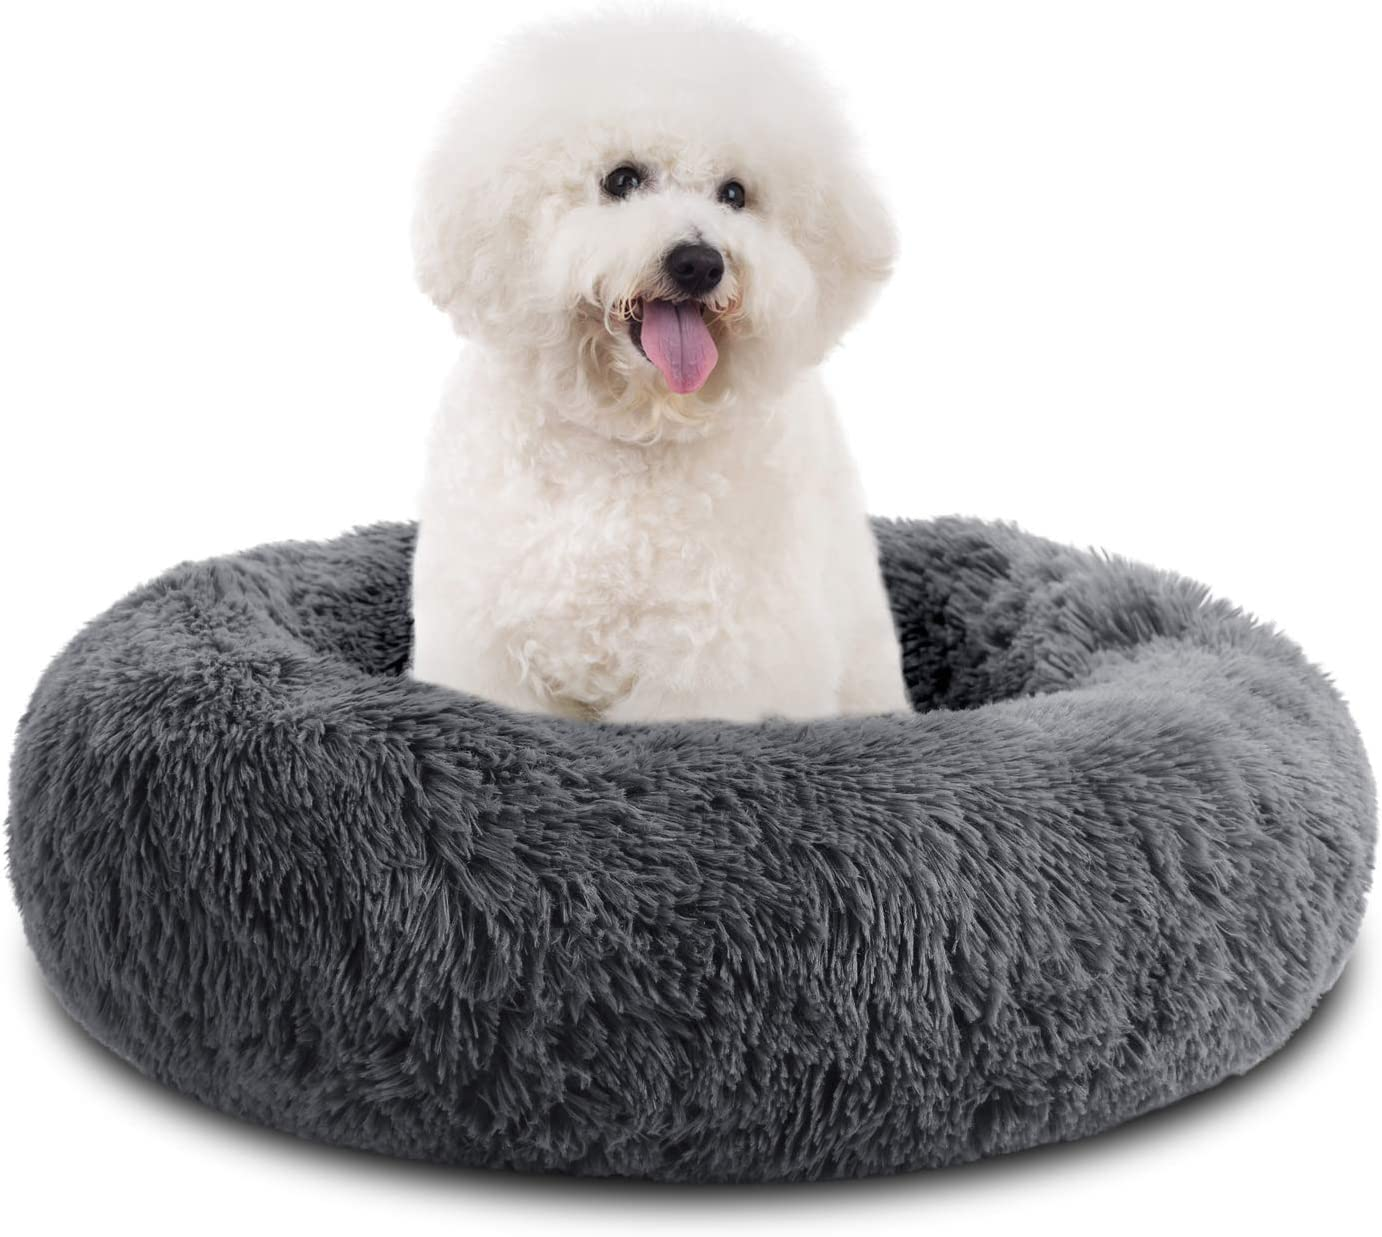 ESOEM Donut Pet Bed, Round Plush Cushion for Small Pets, Pluffy Mat Dog Sofa, Comfy Indoor Cat House Self-Warming Bedding